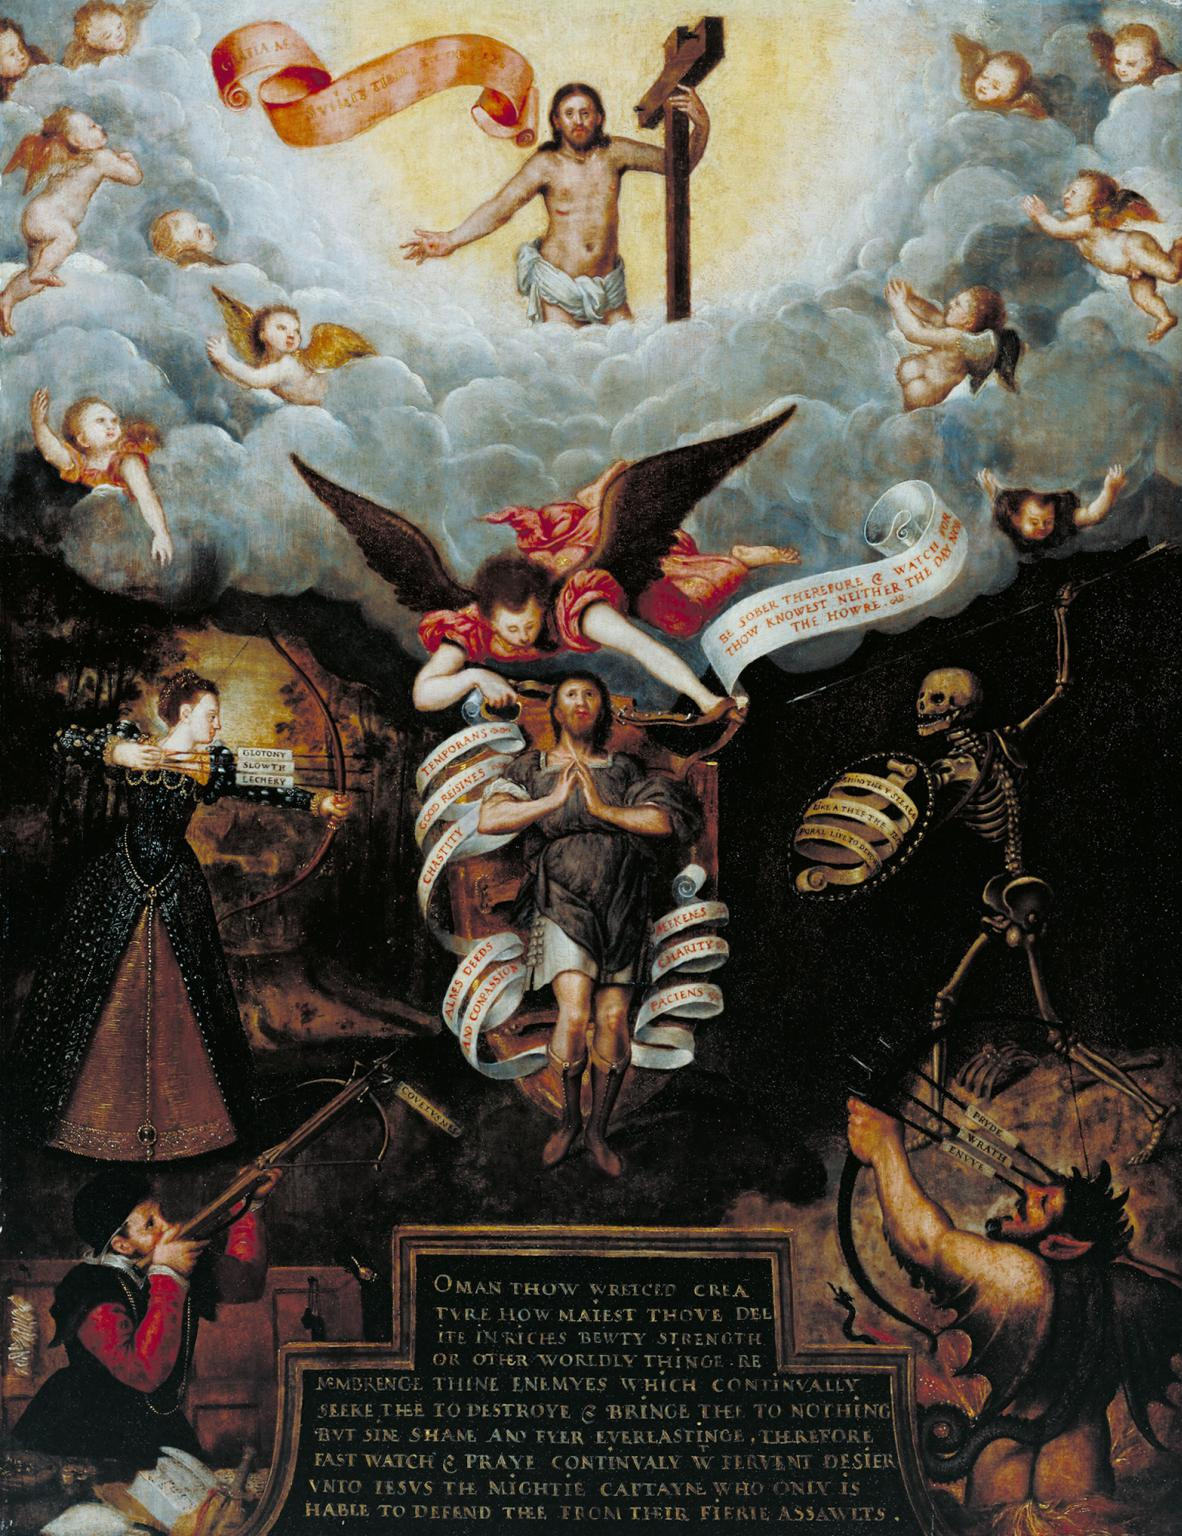 http://upload.wikimedia.org/wikipedia/commons/1/10/An_Allegory_of_Man.jpg